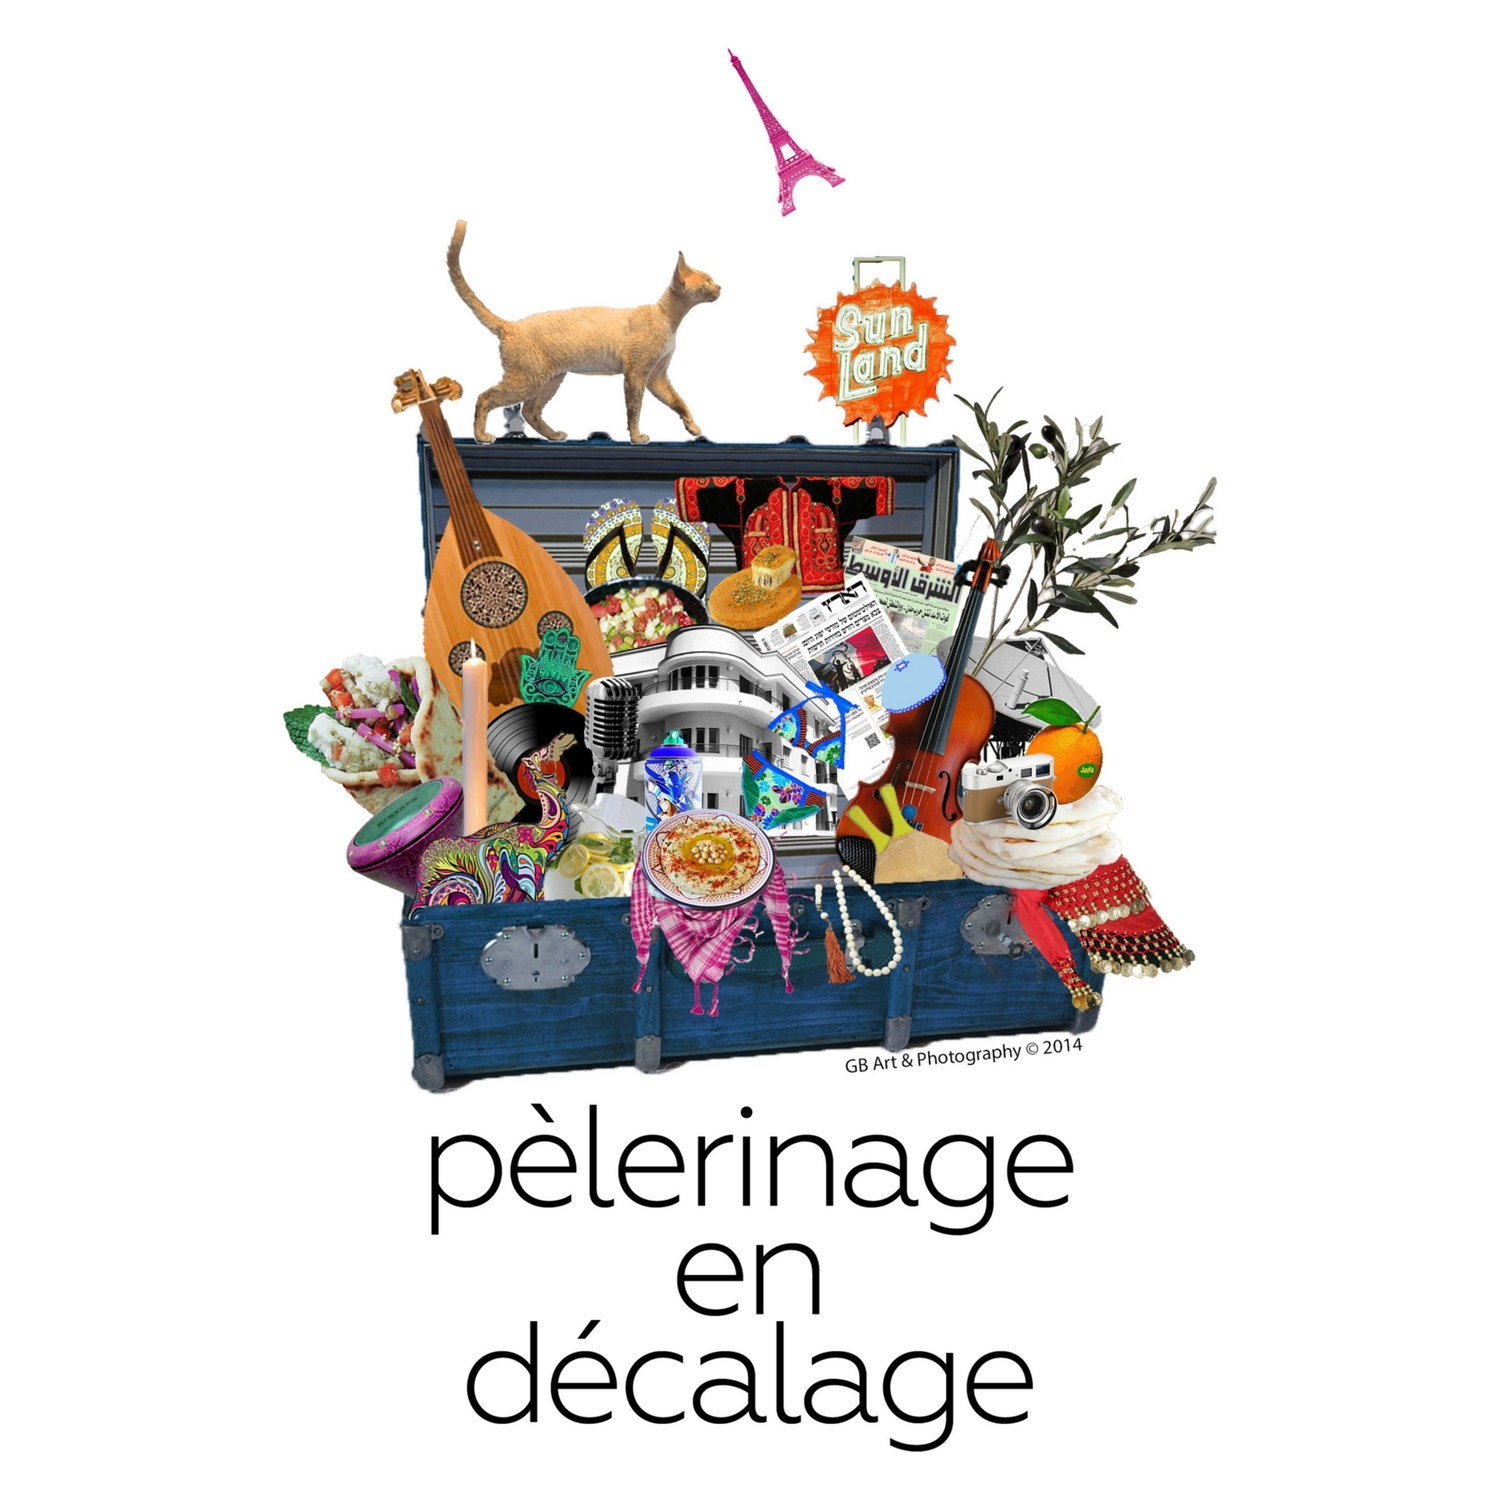 Pèlerinage en décalage